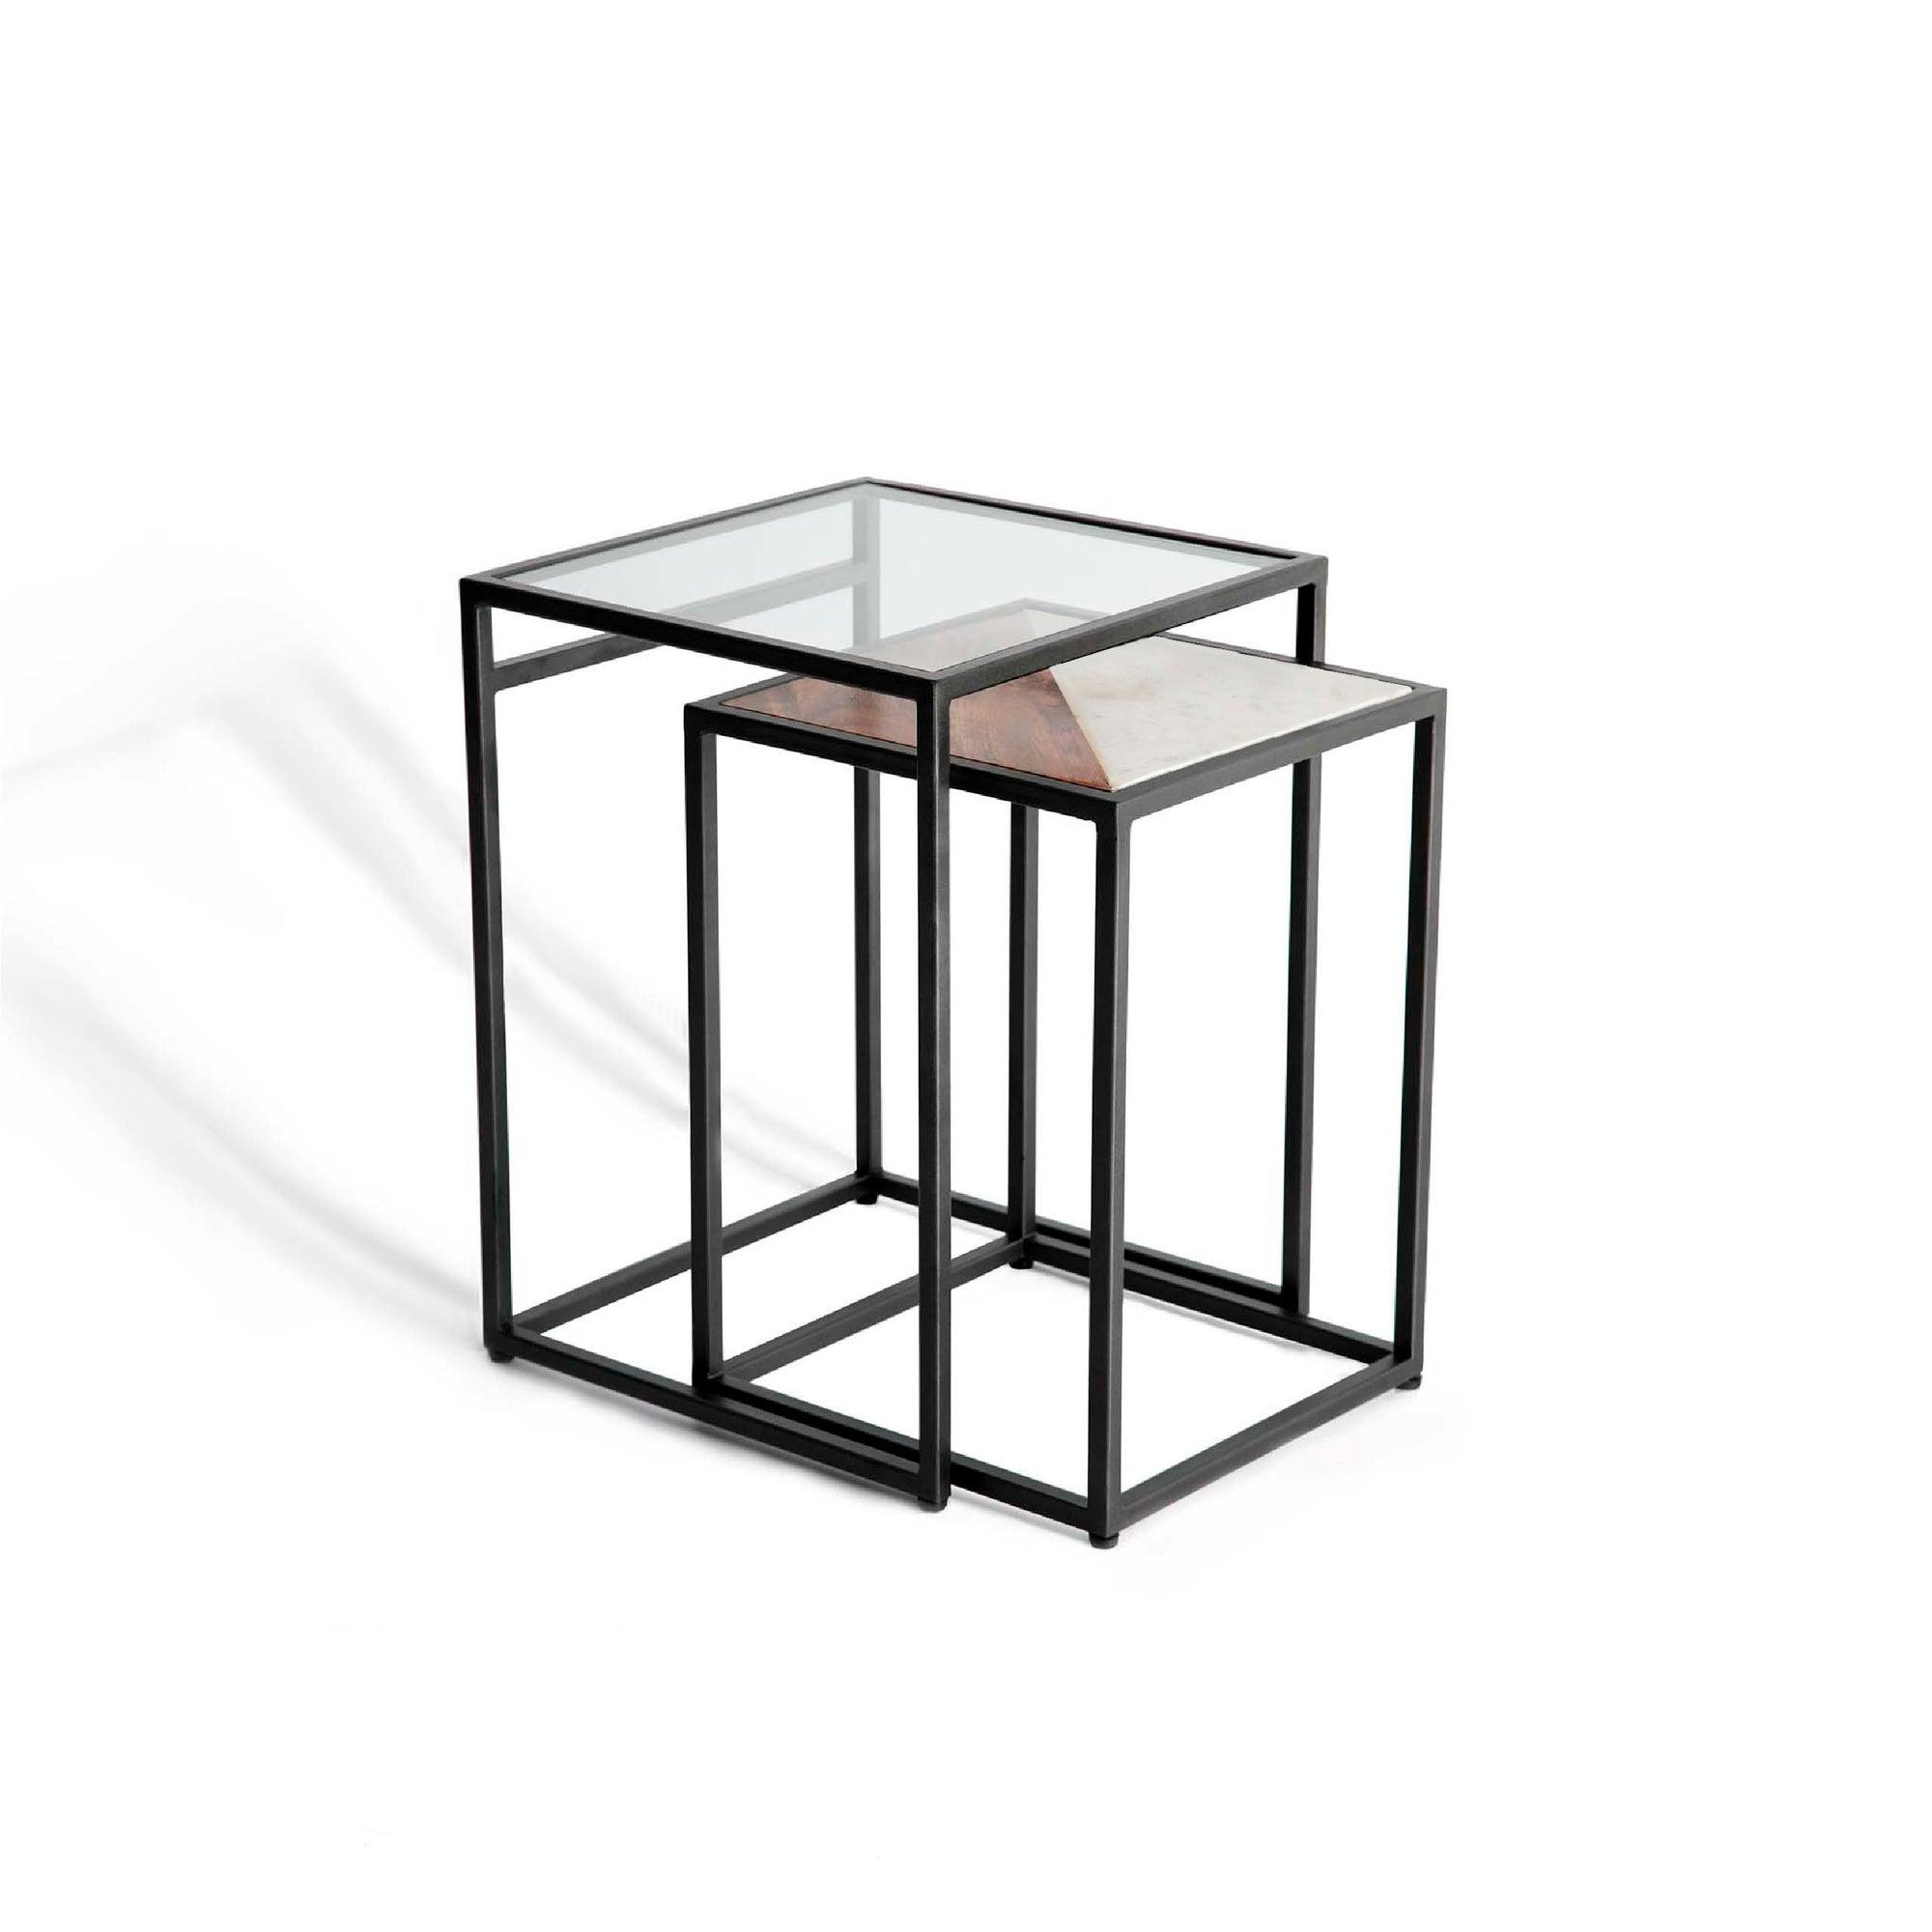 Kandla White Marble & Wood Square Nest of Tables with Grey Base by Roseland Furniture